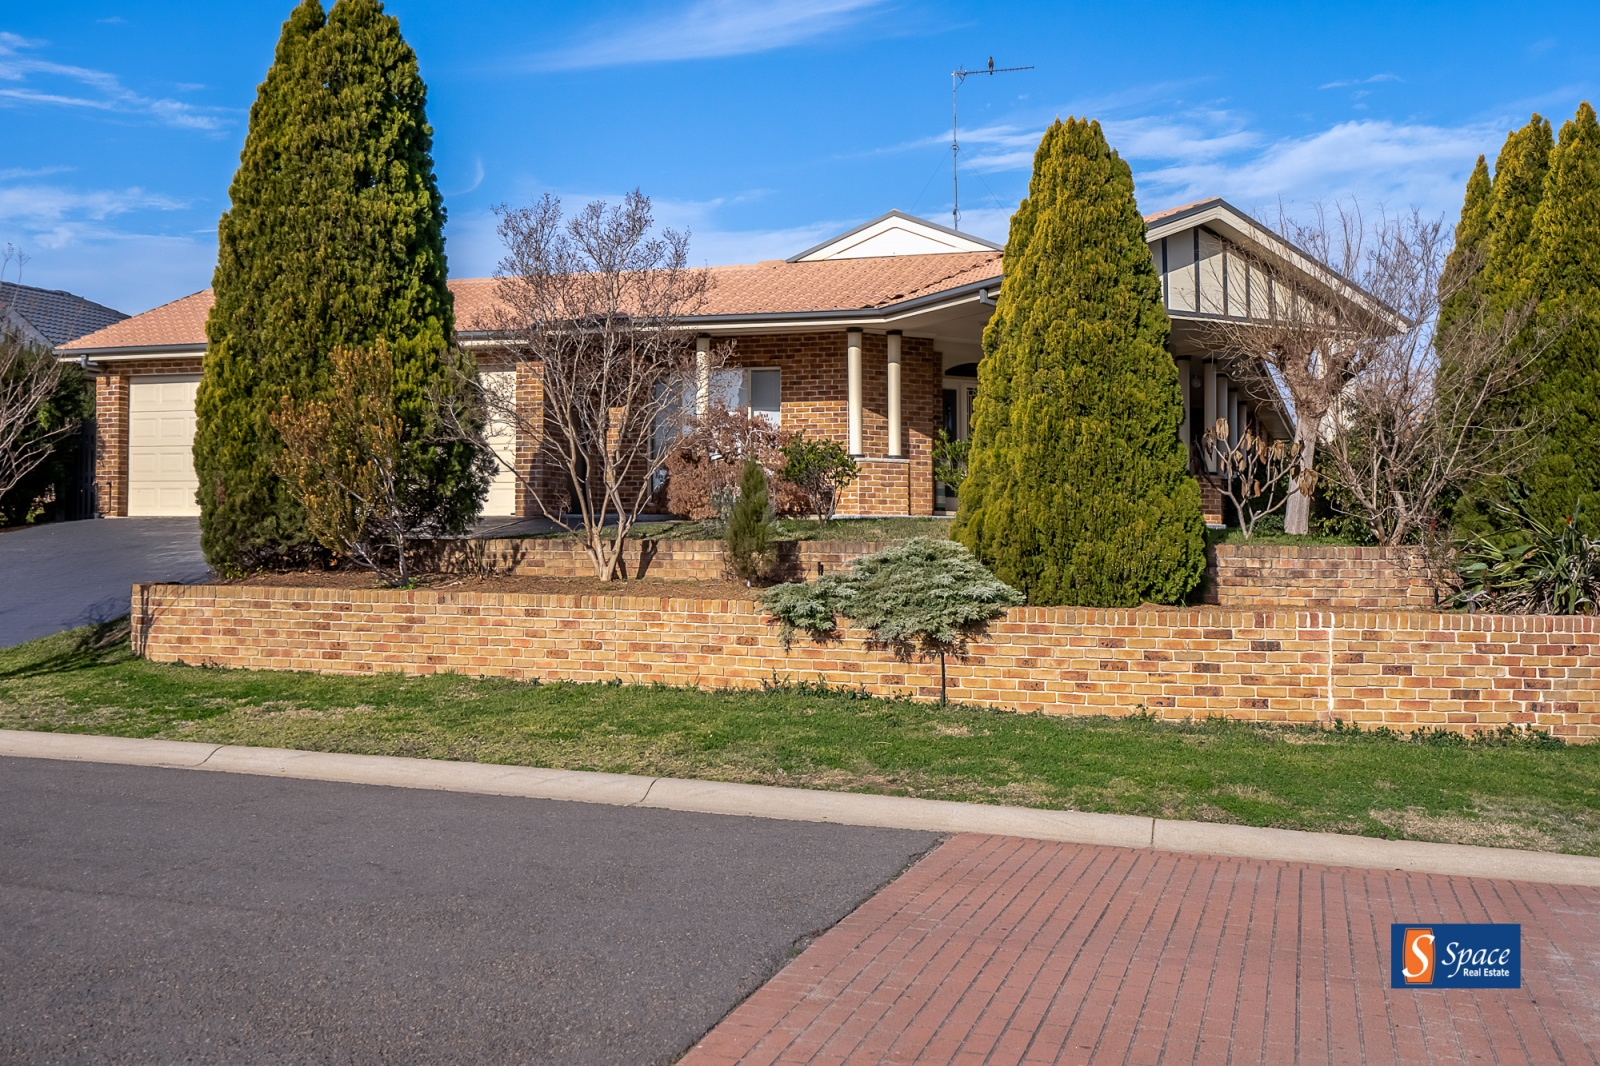 52 Manna Gum Road,Narellan Vale,NSW,4 Bedrooms Bedrooms,2 BathroomsBathrooms,House,Manna Gum Road,1013